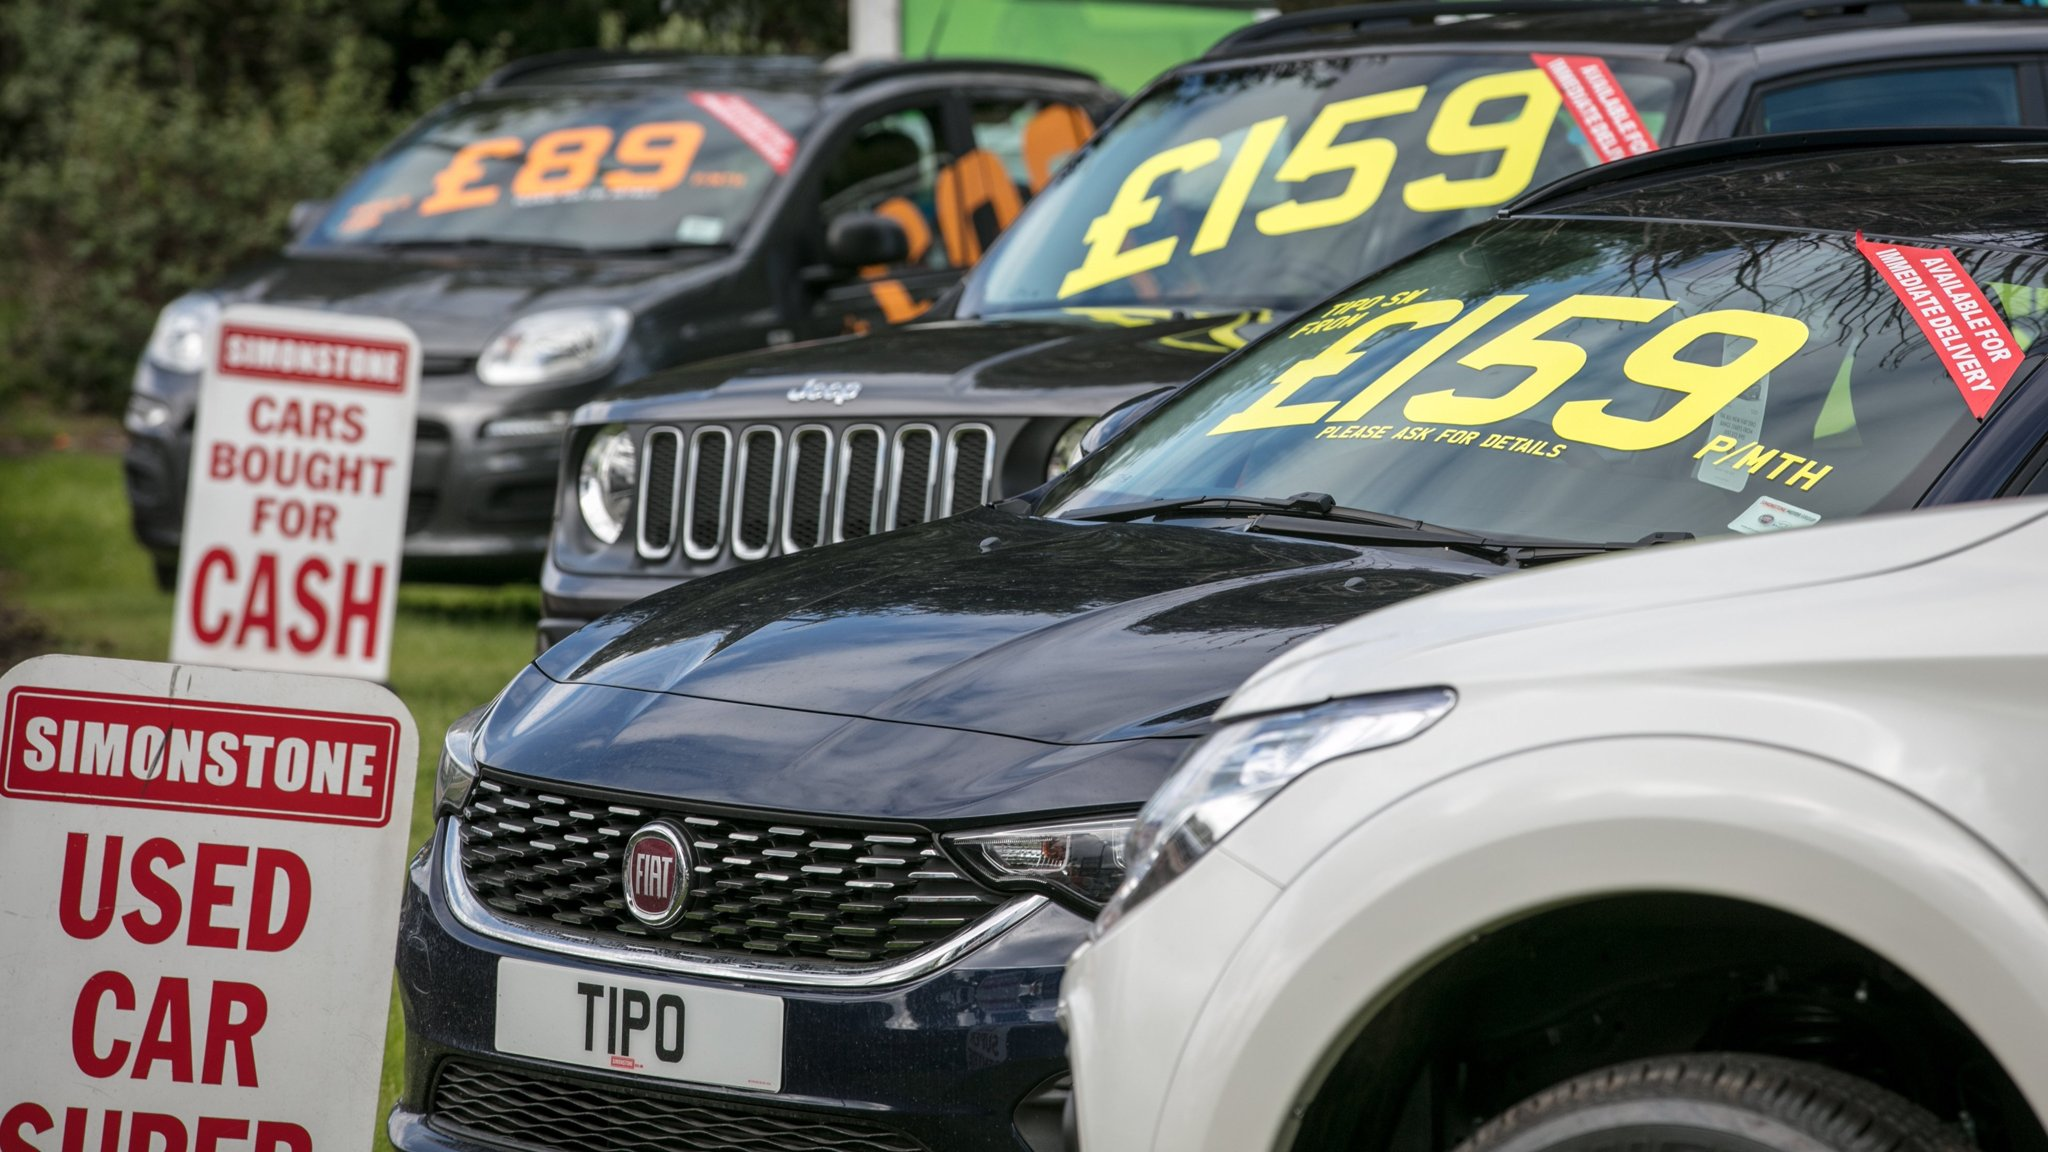 Used car pile-up signals a diversion in the auto trade | Financial Times